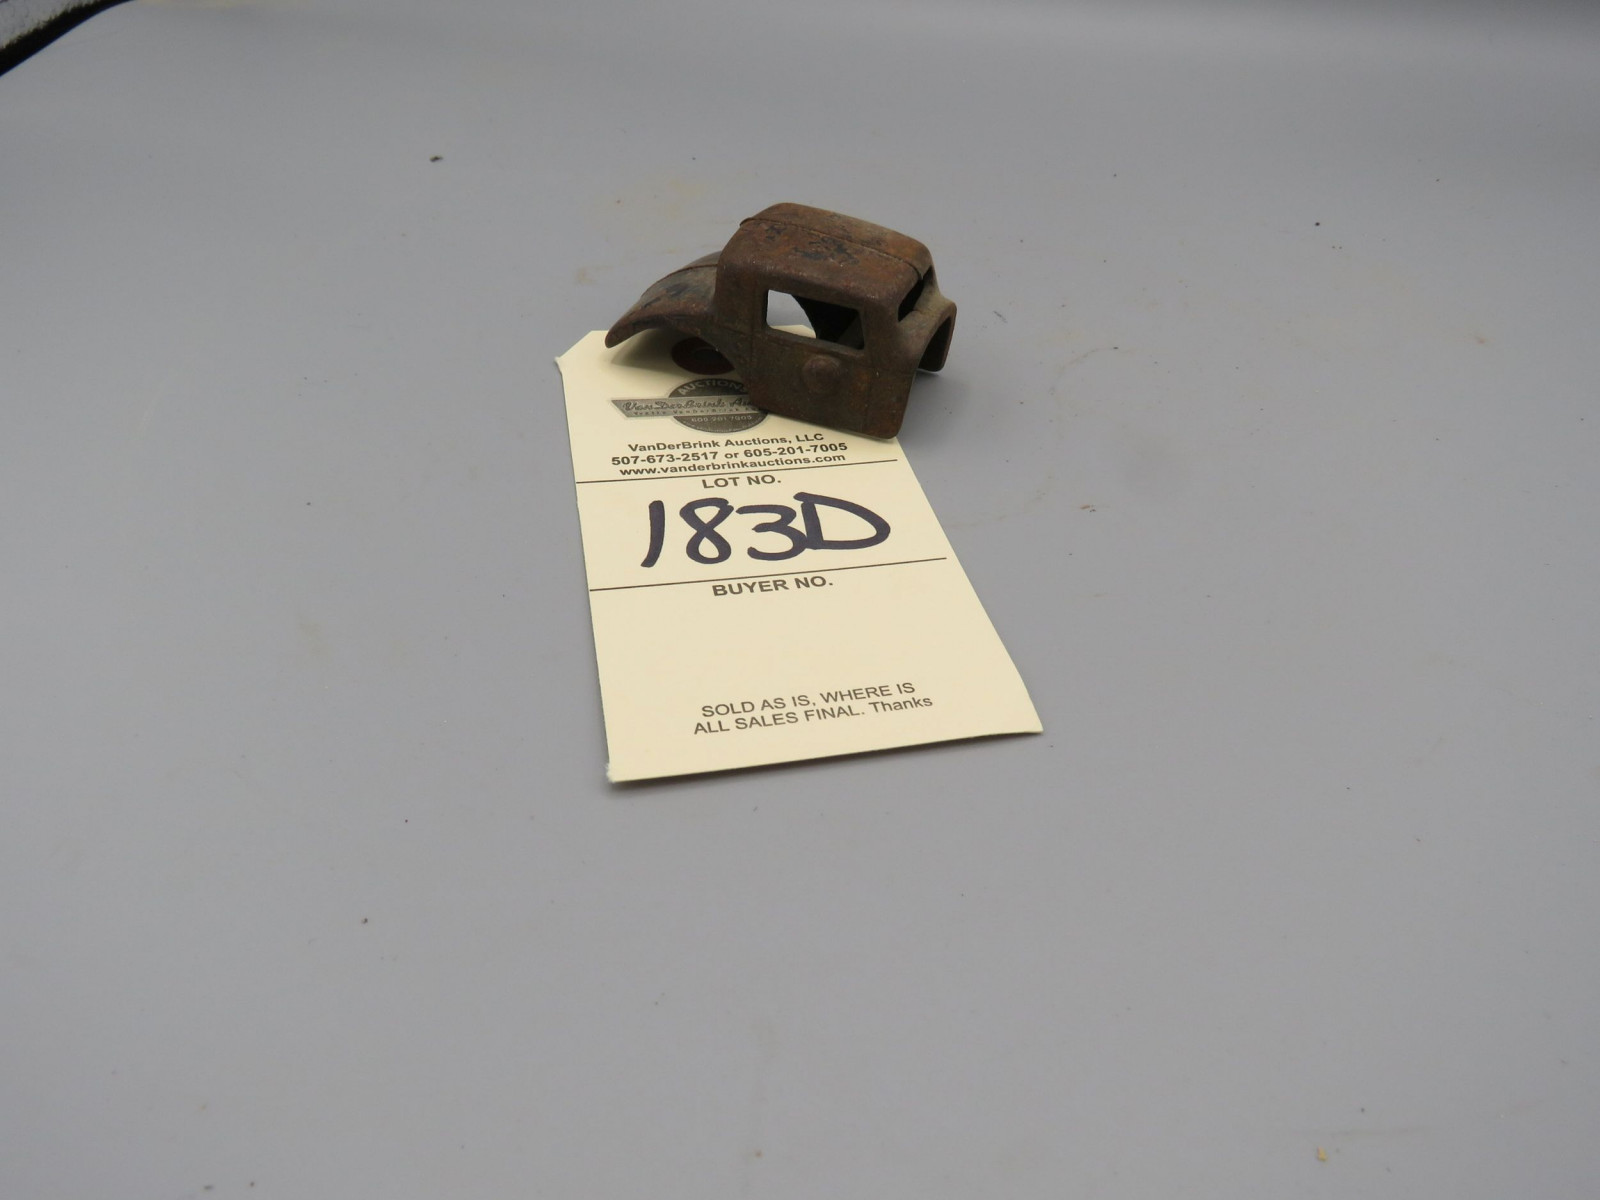 1932 Coupe Cast Iron Body Approx. 2.5 inches - Image 1